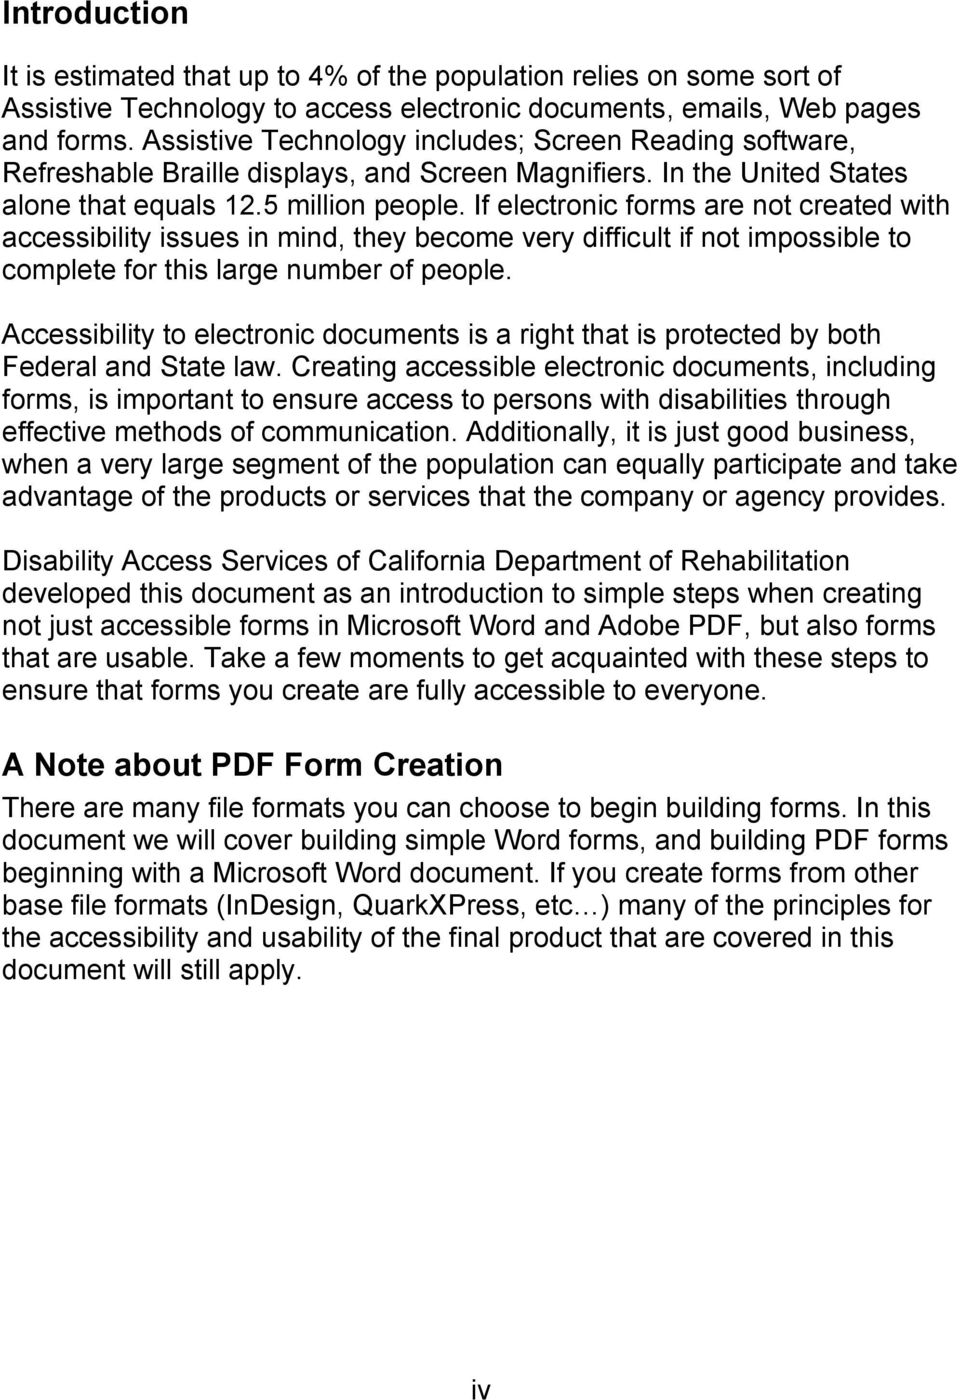 Creating Accessible Forms In Microsoft Word And Adobe Pdf Pdf